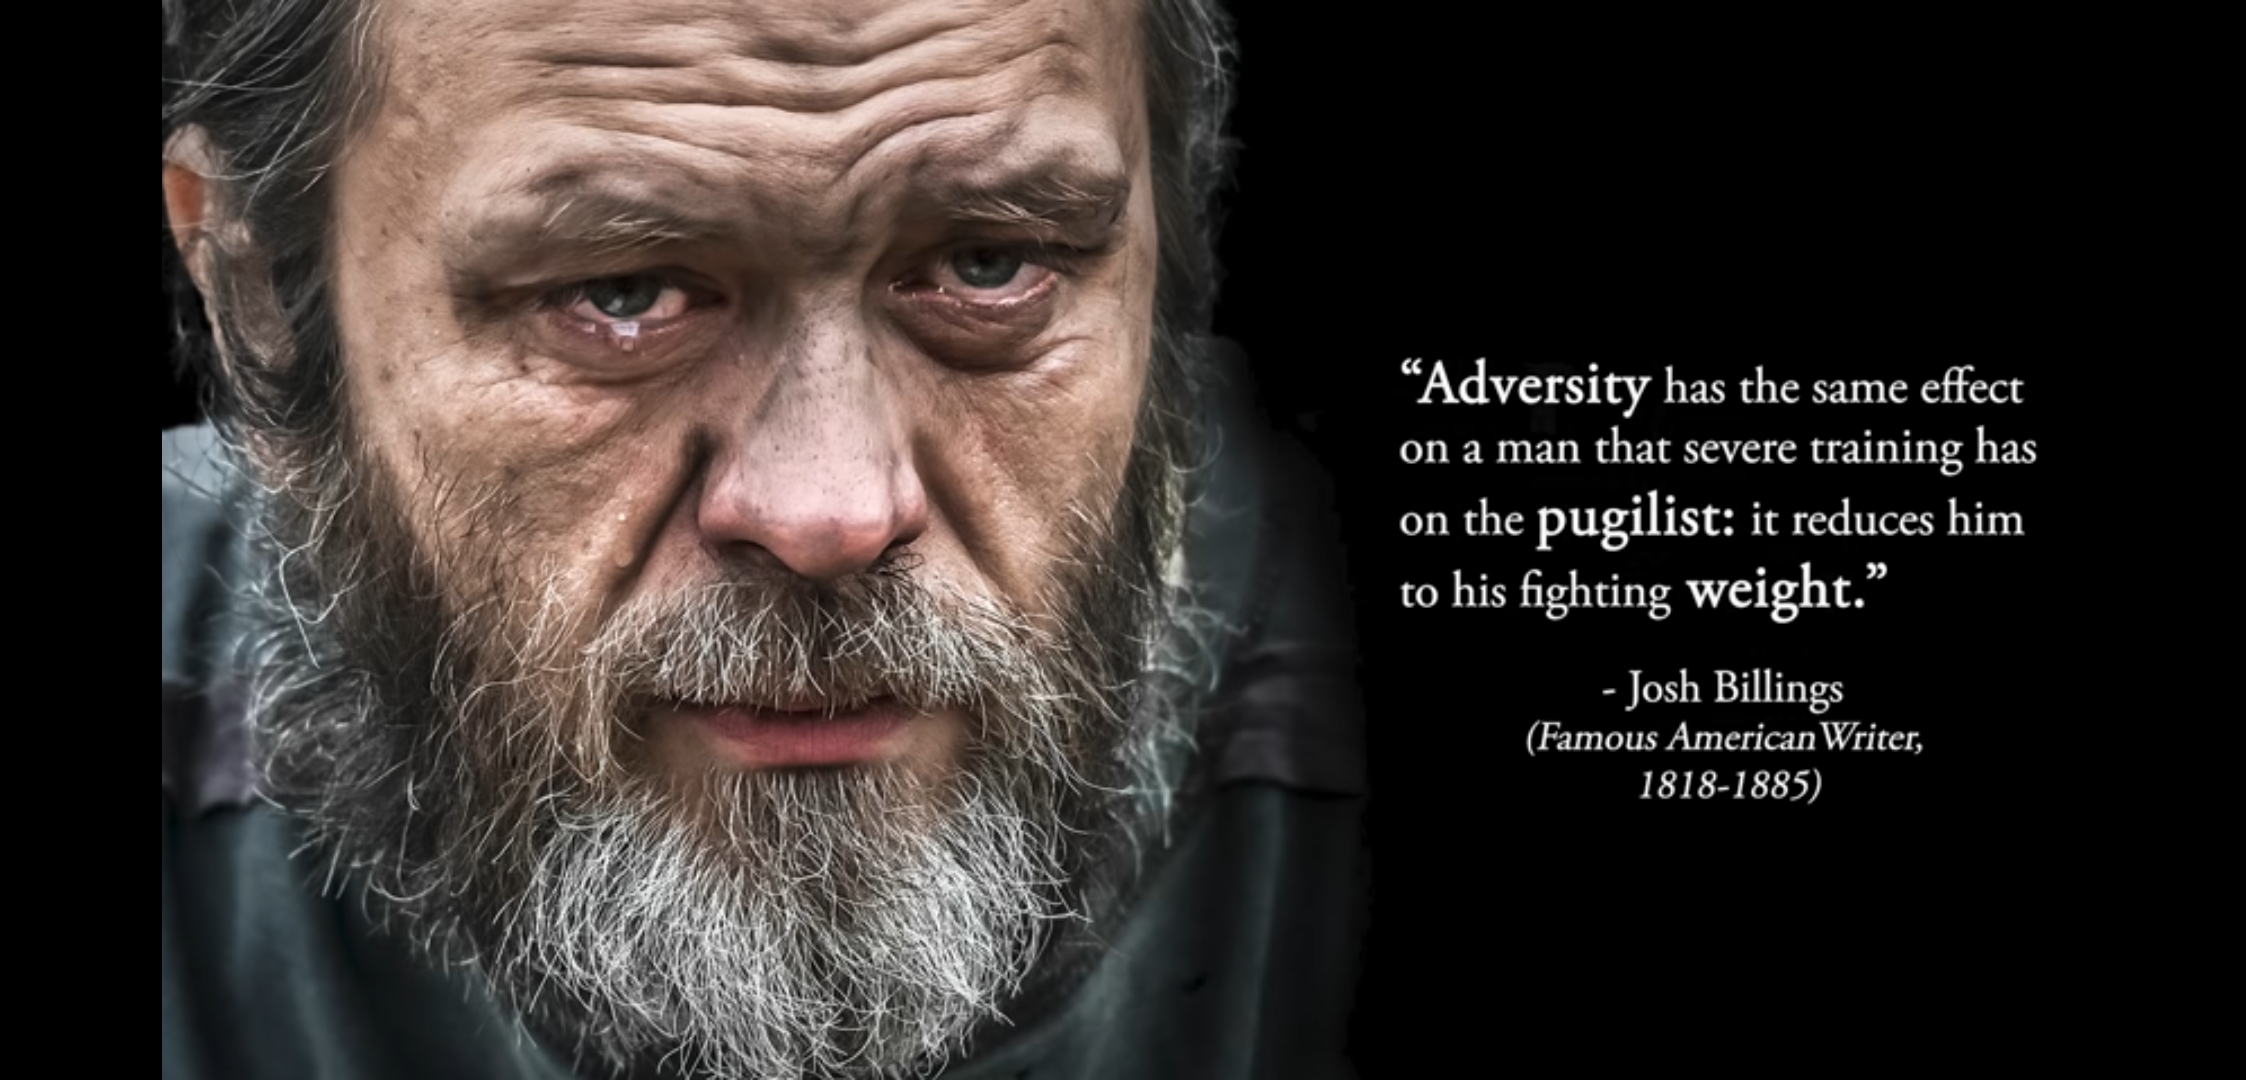 """Adversity has the same effect on a man that severe training has on the pugilist: it reduces him to his fighting weight."" Josh Billings [1080 X 2246]"